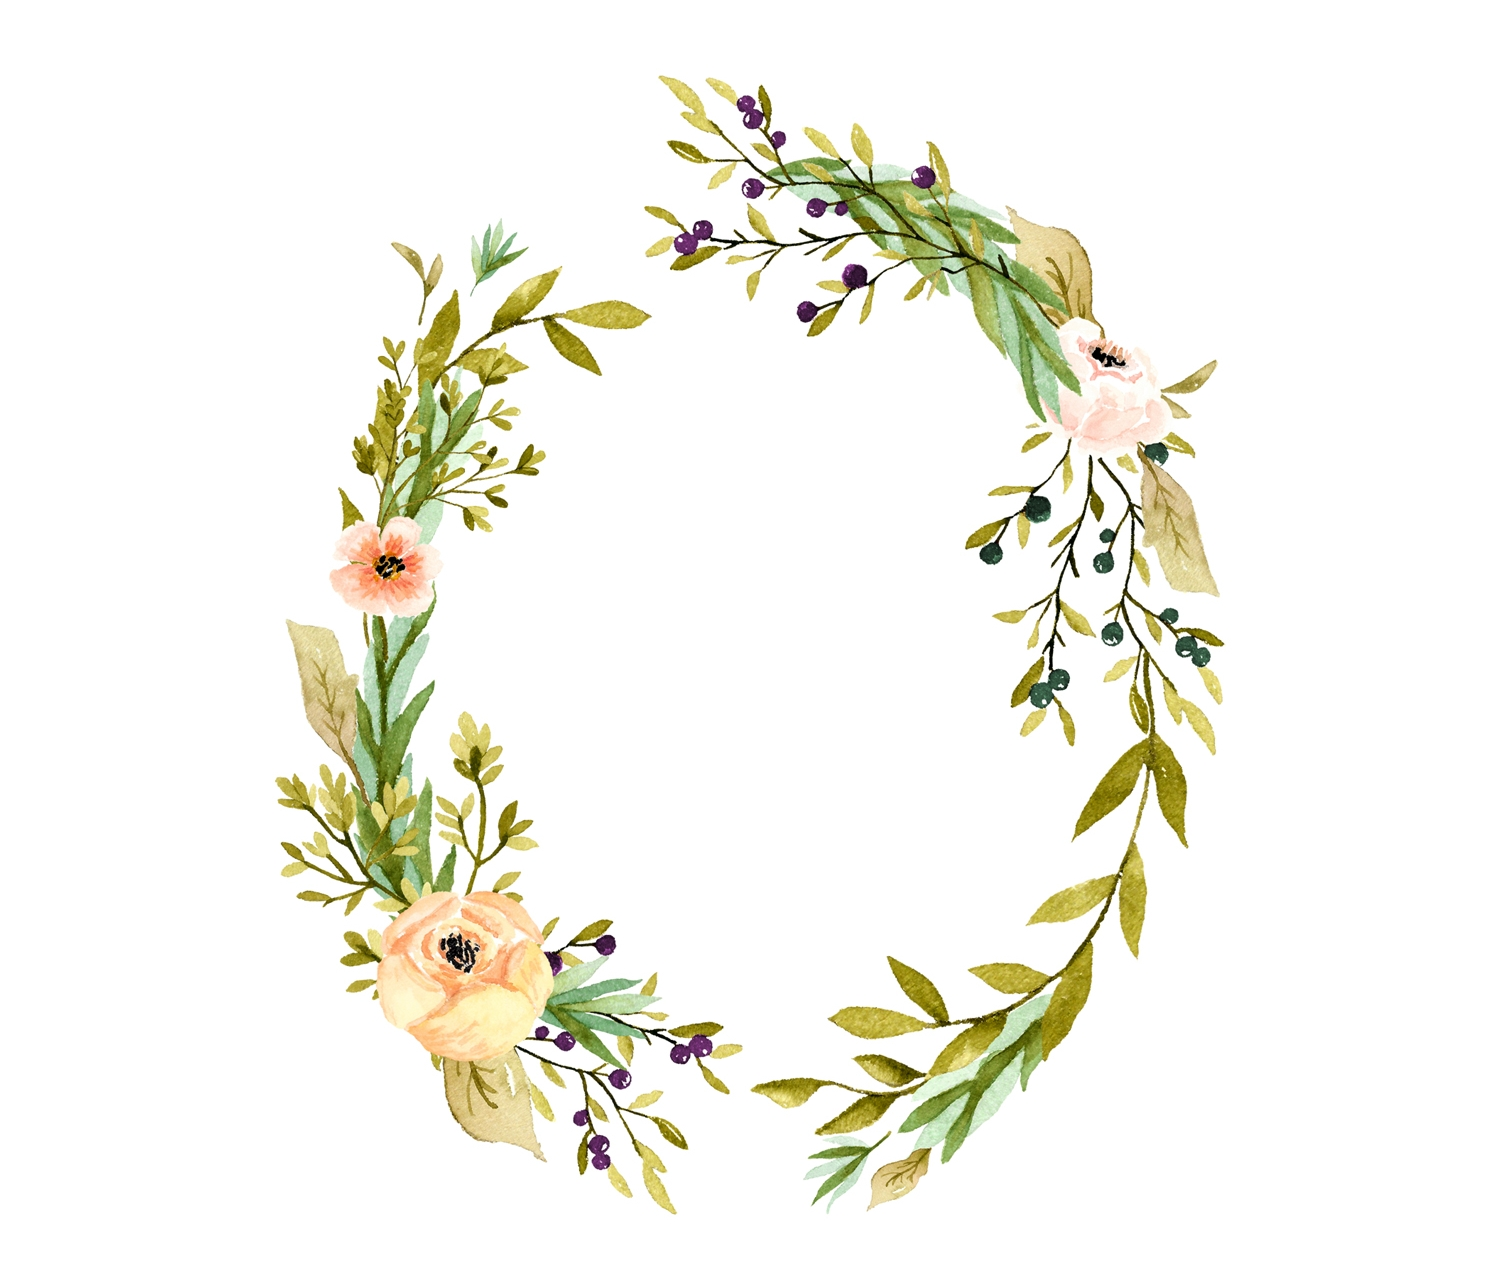 mountainside-meadows-wreath